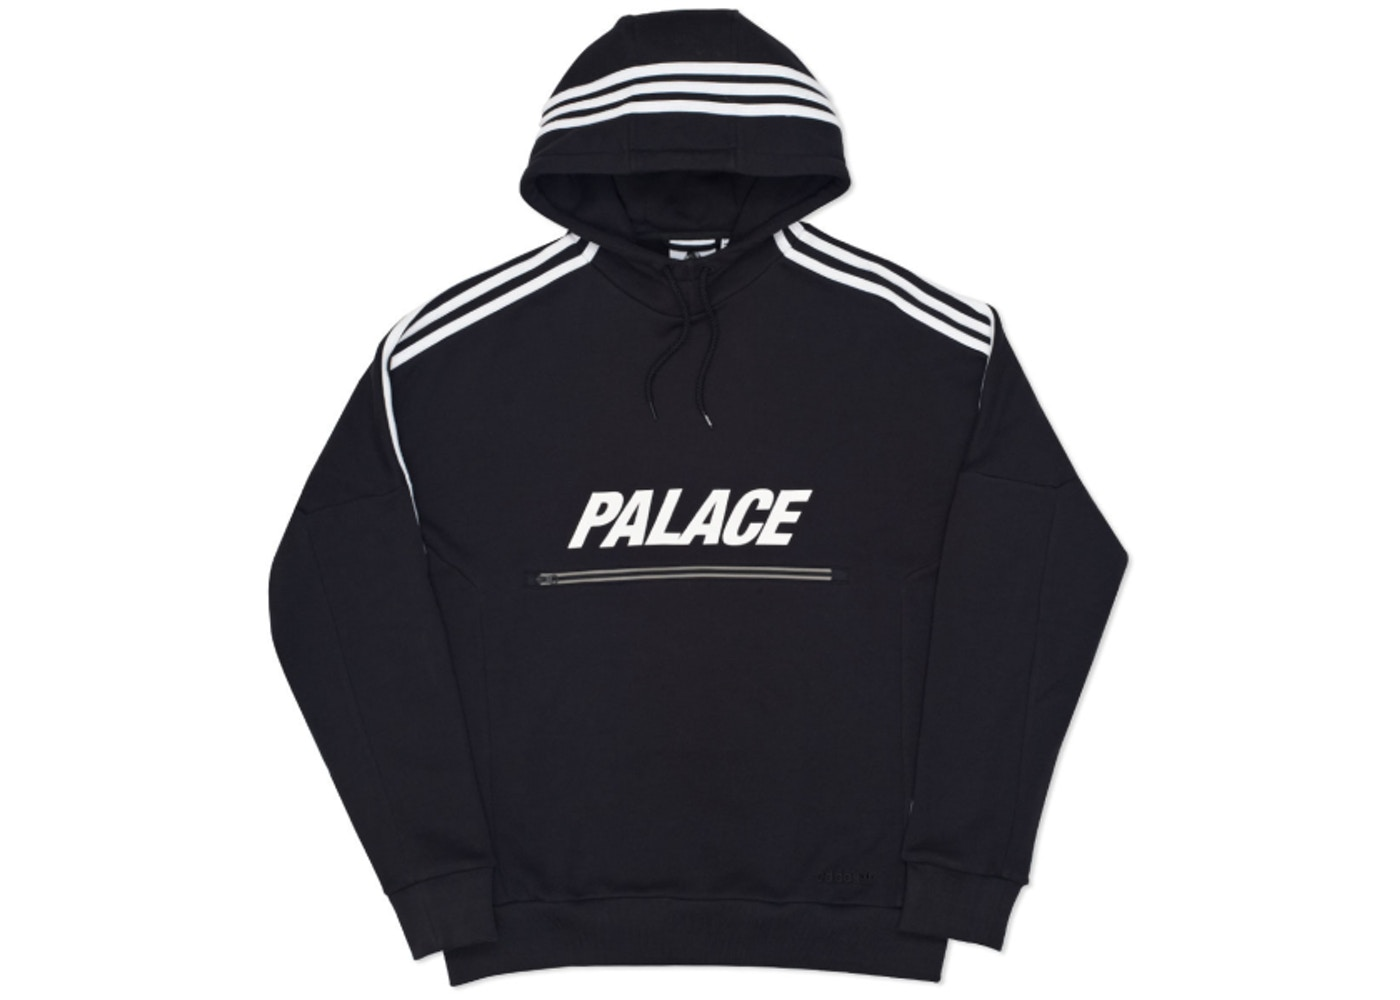 d61b03f5 Palace adidas Track Top Black/White - Adidas Summer 2016